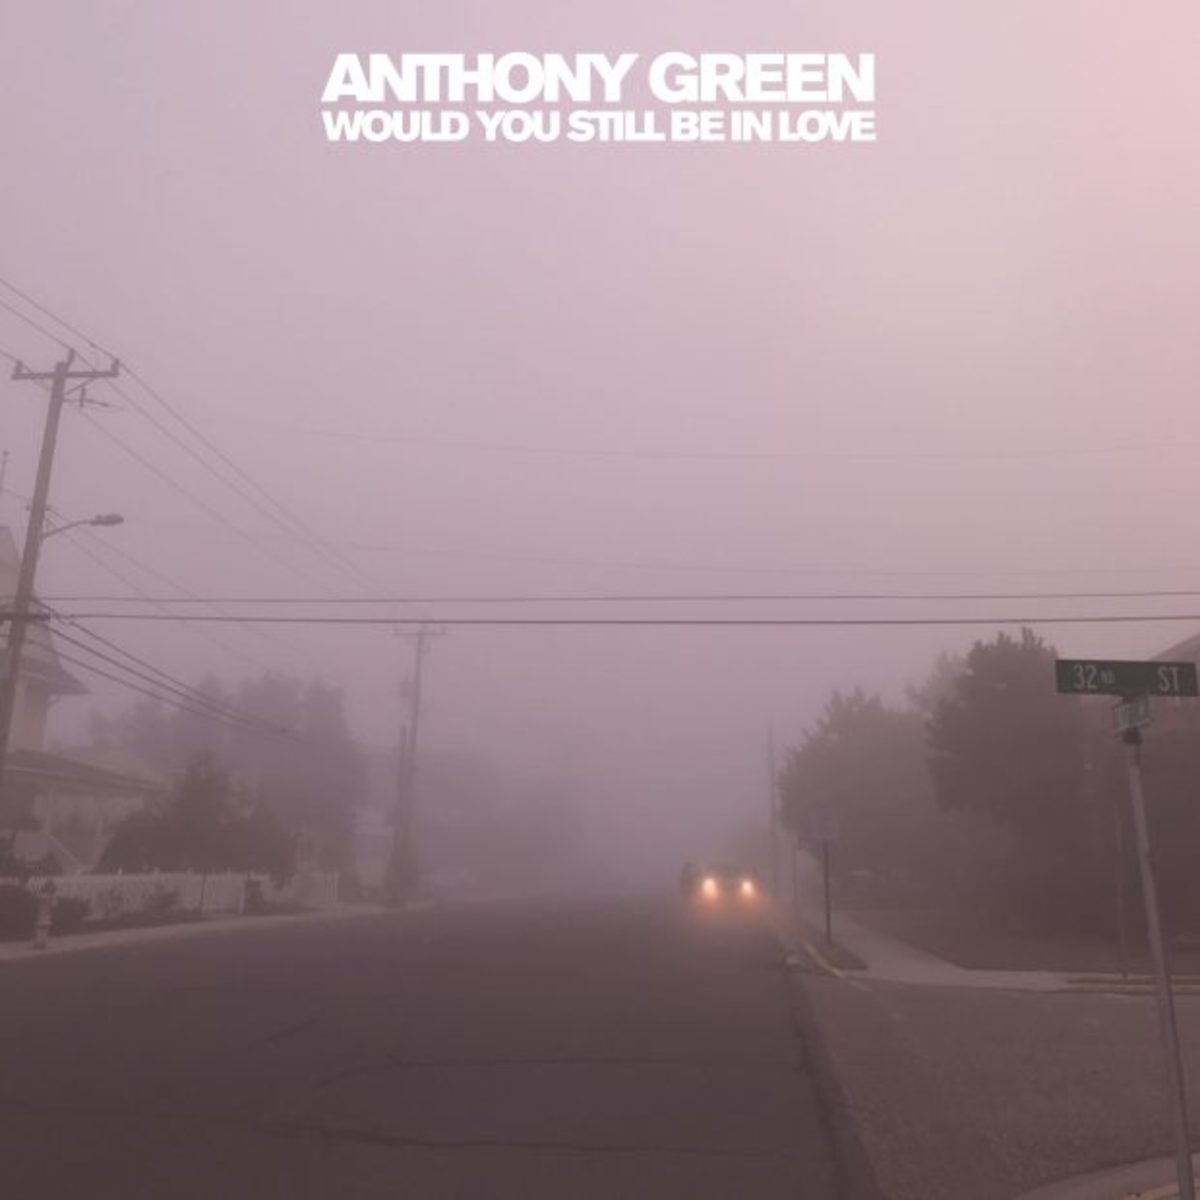 anthony-green-would-you-still-be-in-love-review